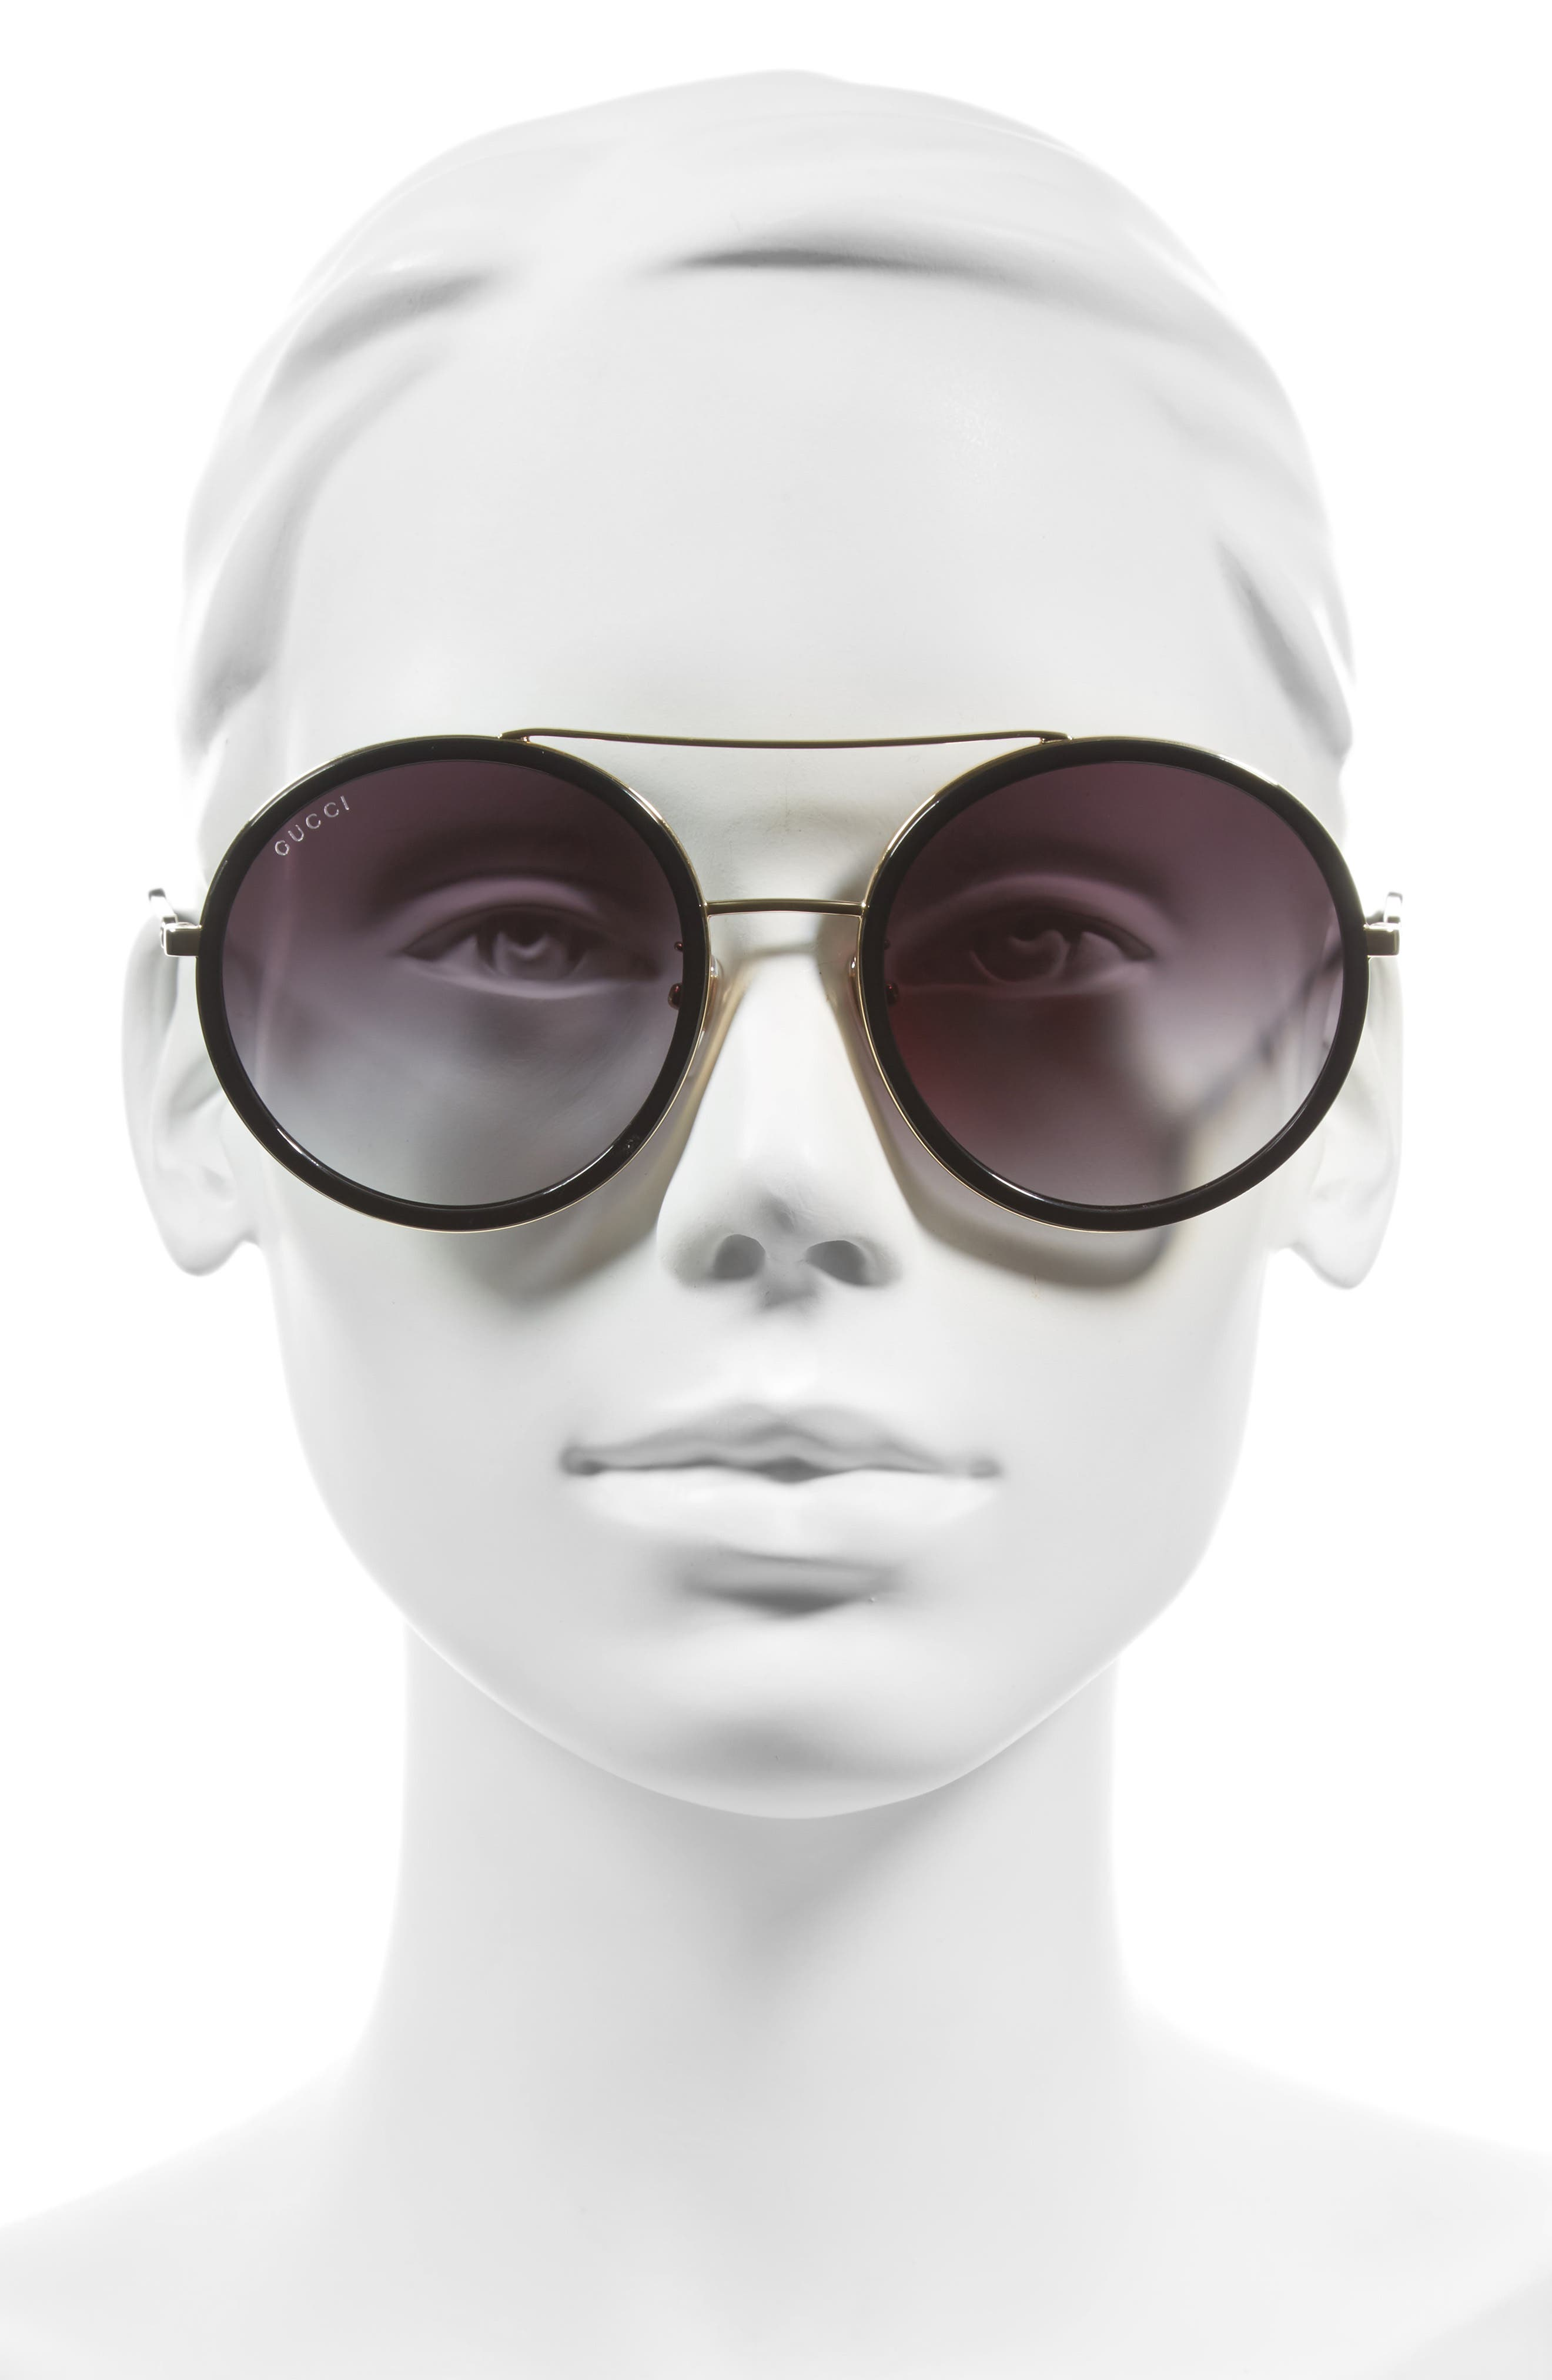 56mm Round Sunglasses,                             Main thumbnail 1, color,                             GOLD